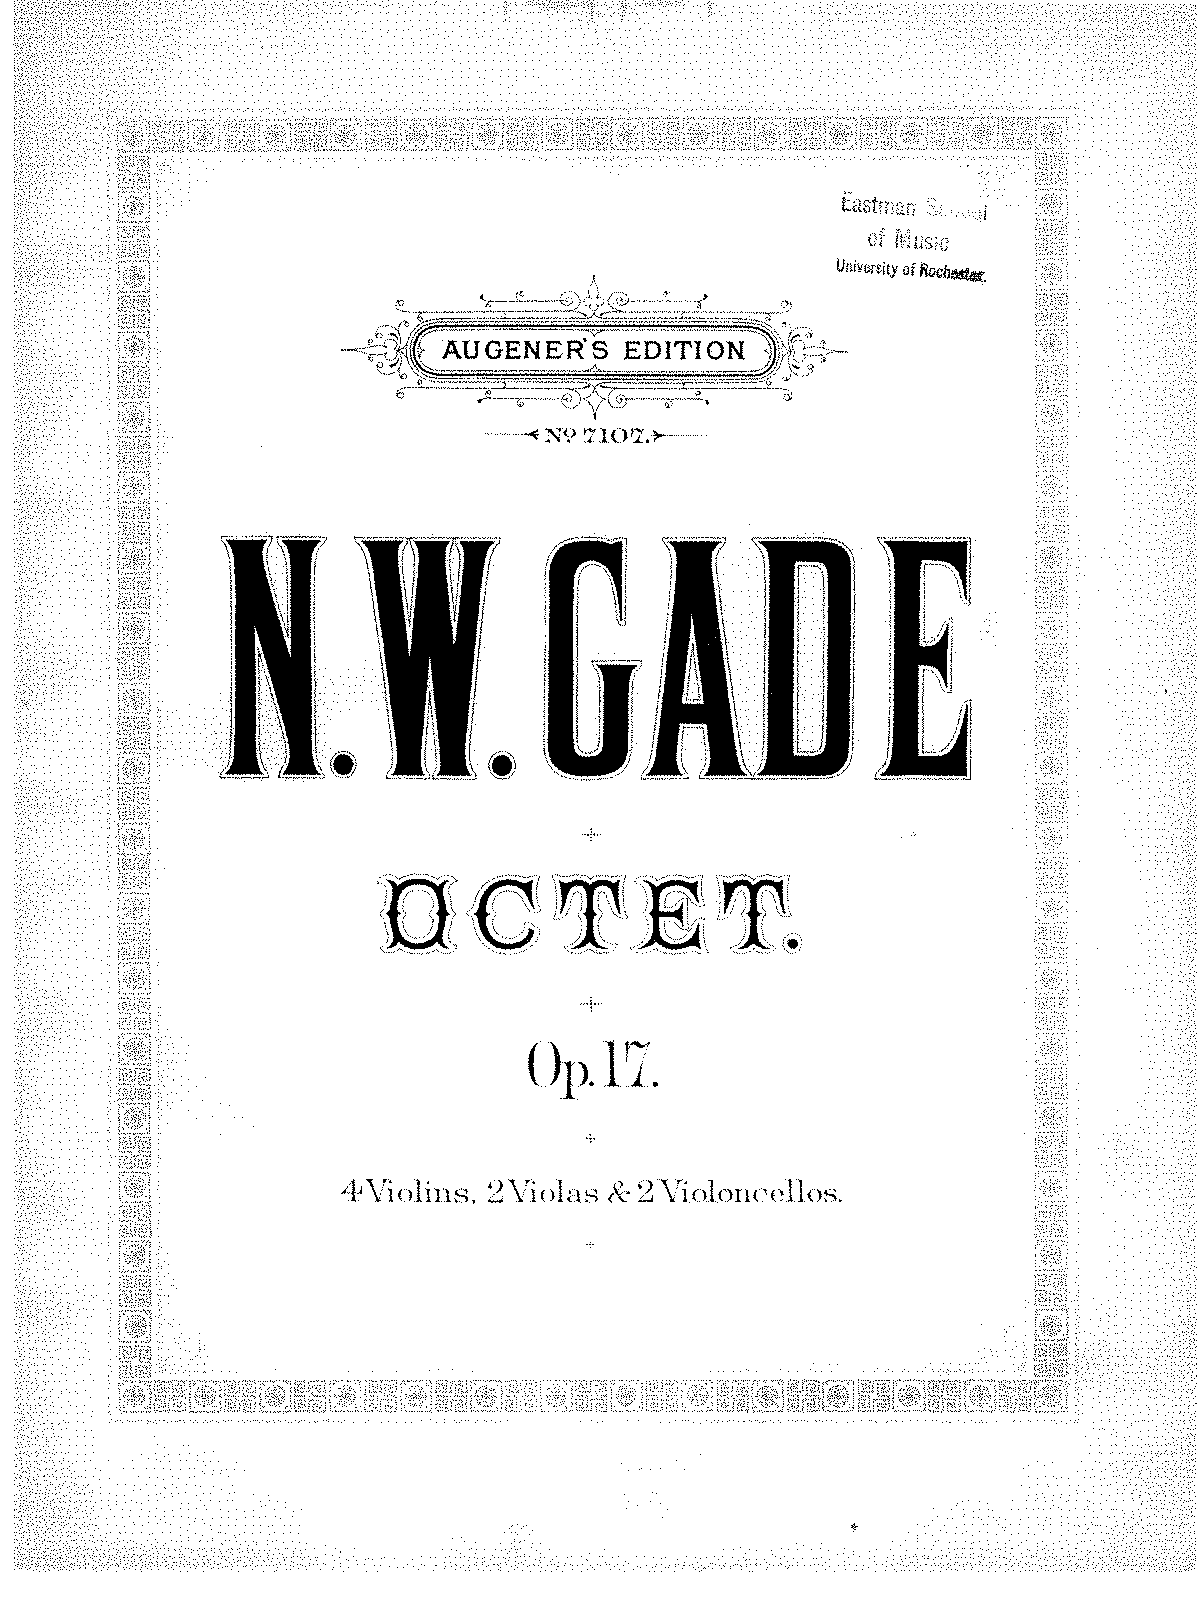 Gade - Octet - colorcover.pdf